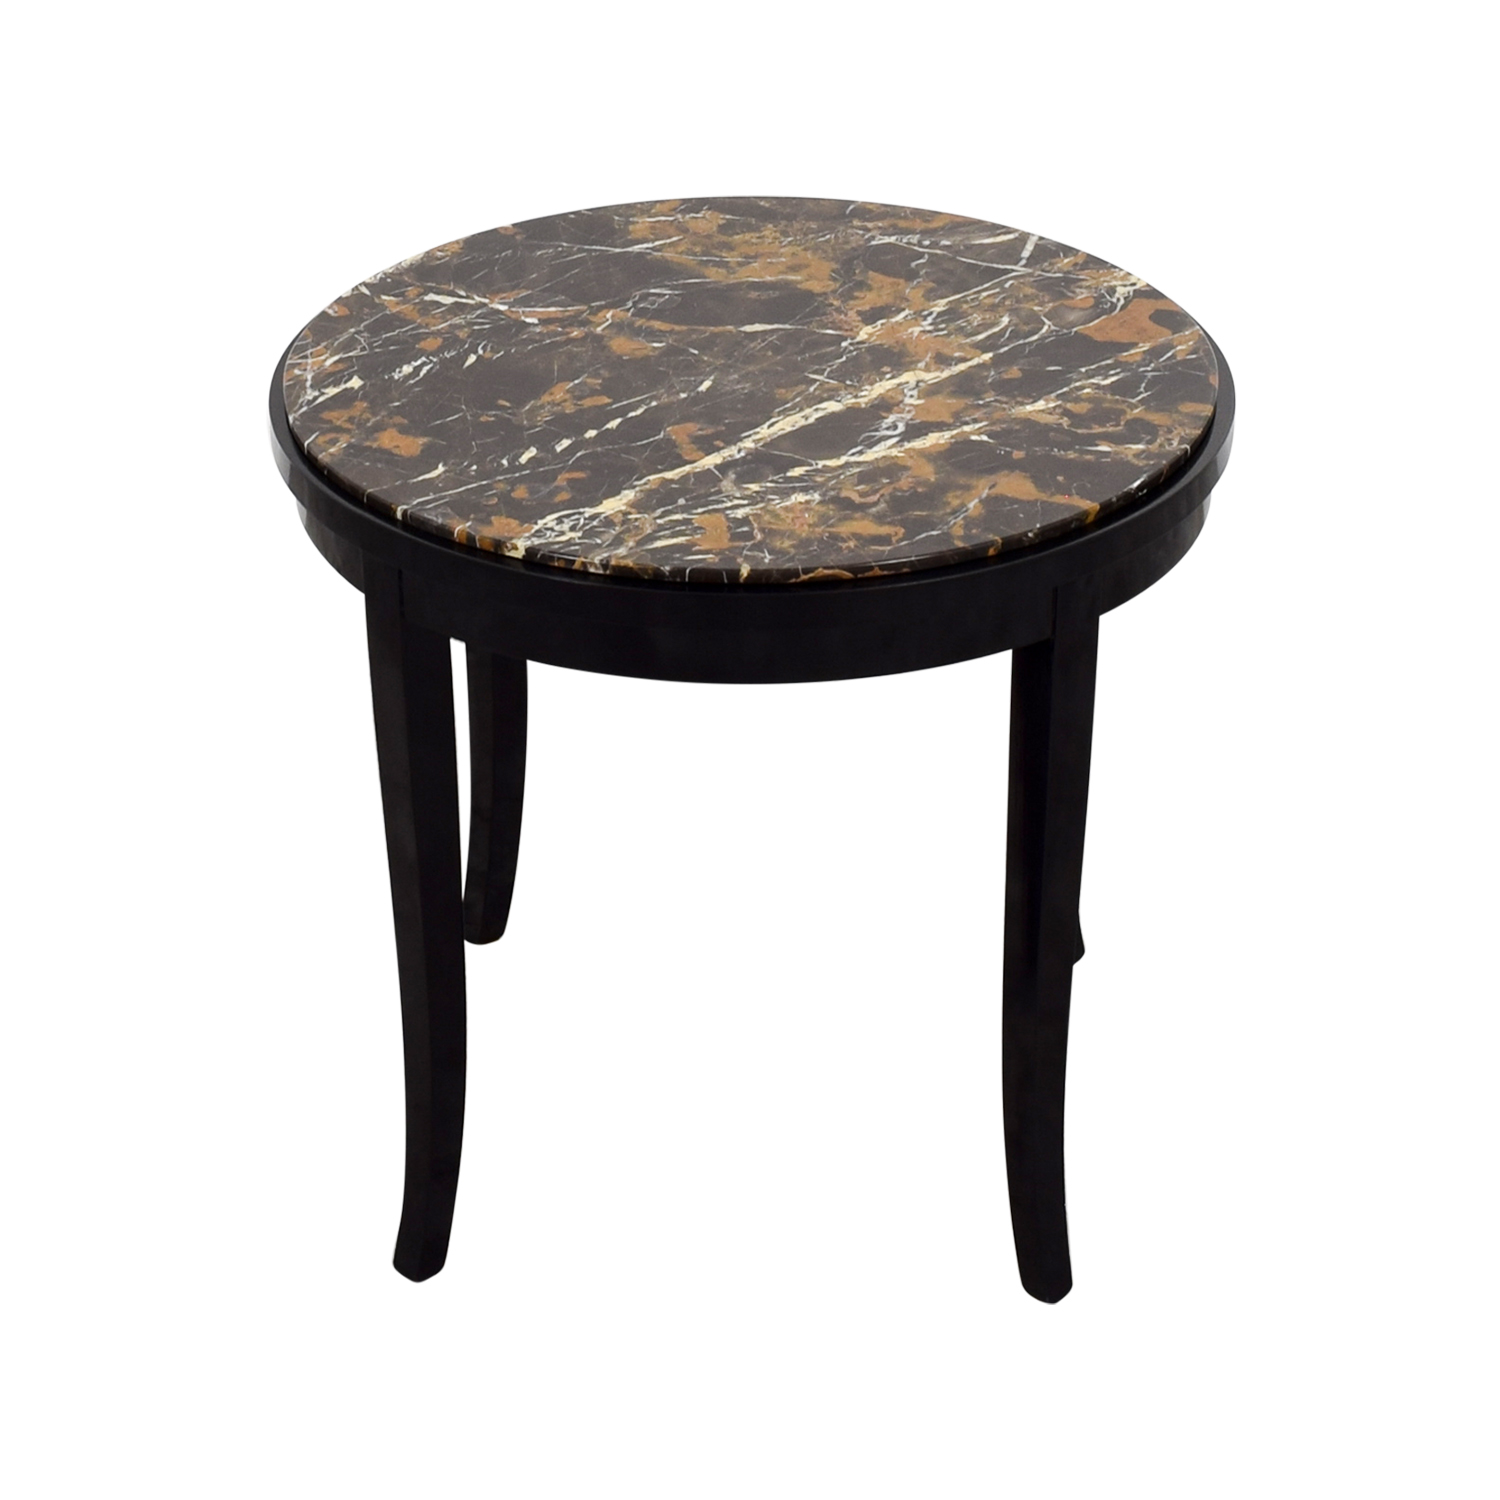 nextnav italian table mid top prevnav designs chaos century modern spectacular coffee marble